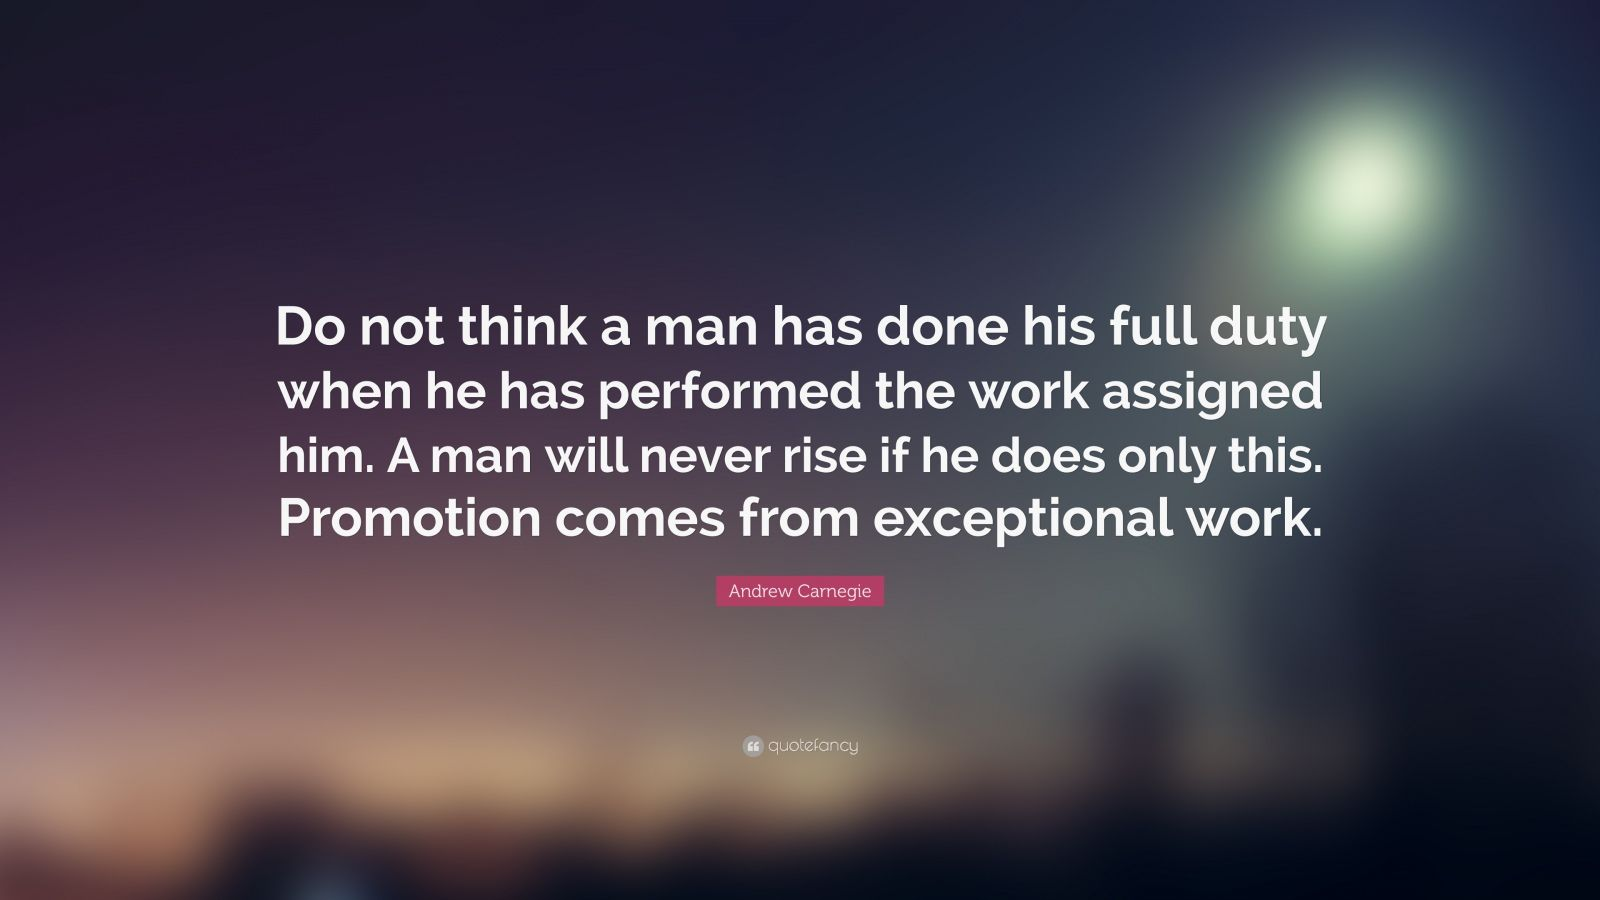 """Andrew Carnegie Quote: """"Do not think a man has done his full duty when he has performed the work assigned him. A man will never rise if he does only this. Promotion comes from exceptional work."""""""